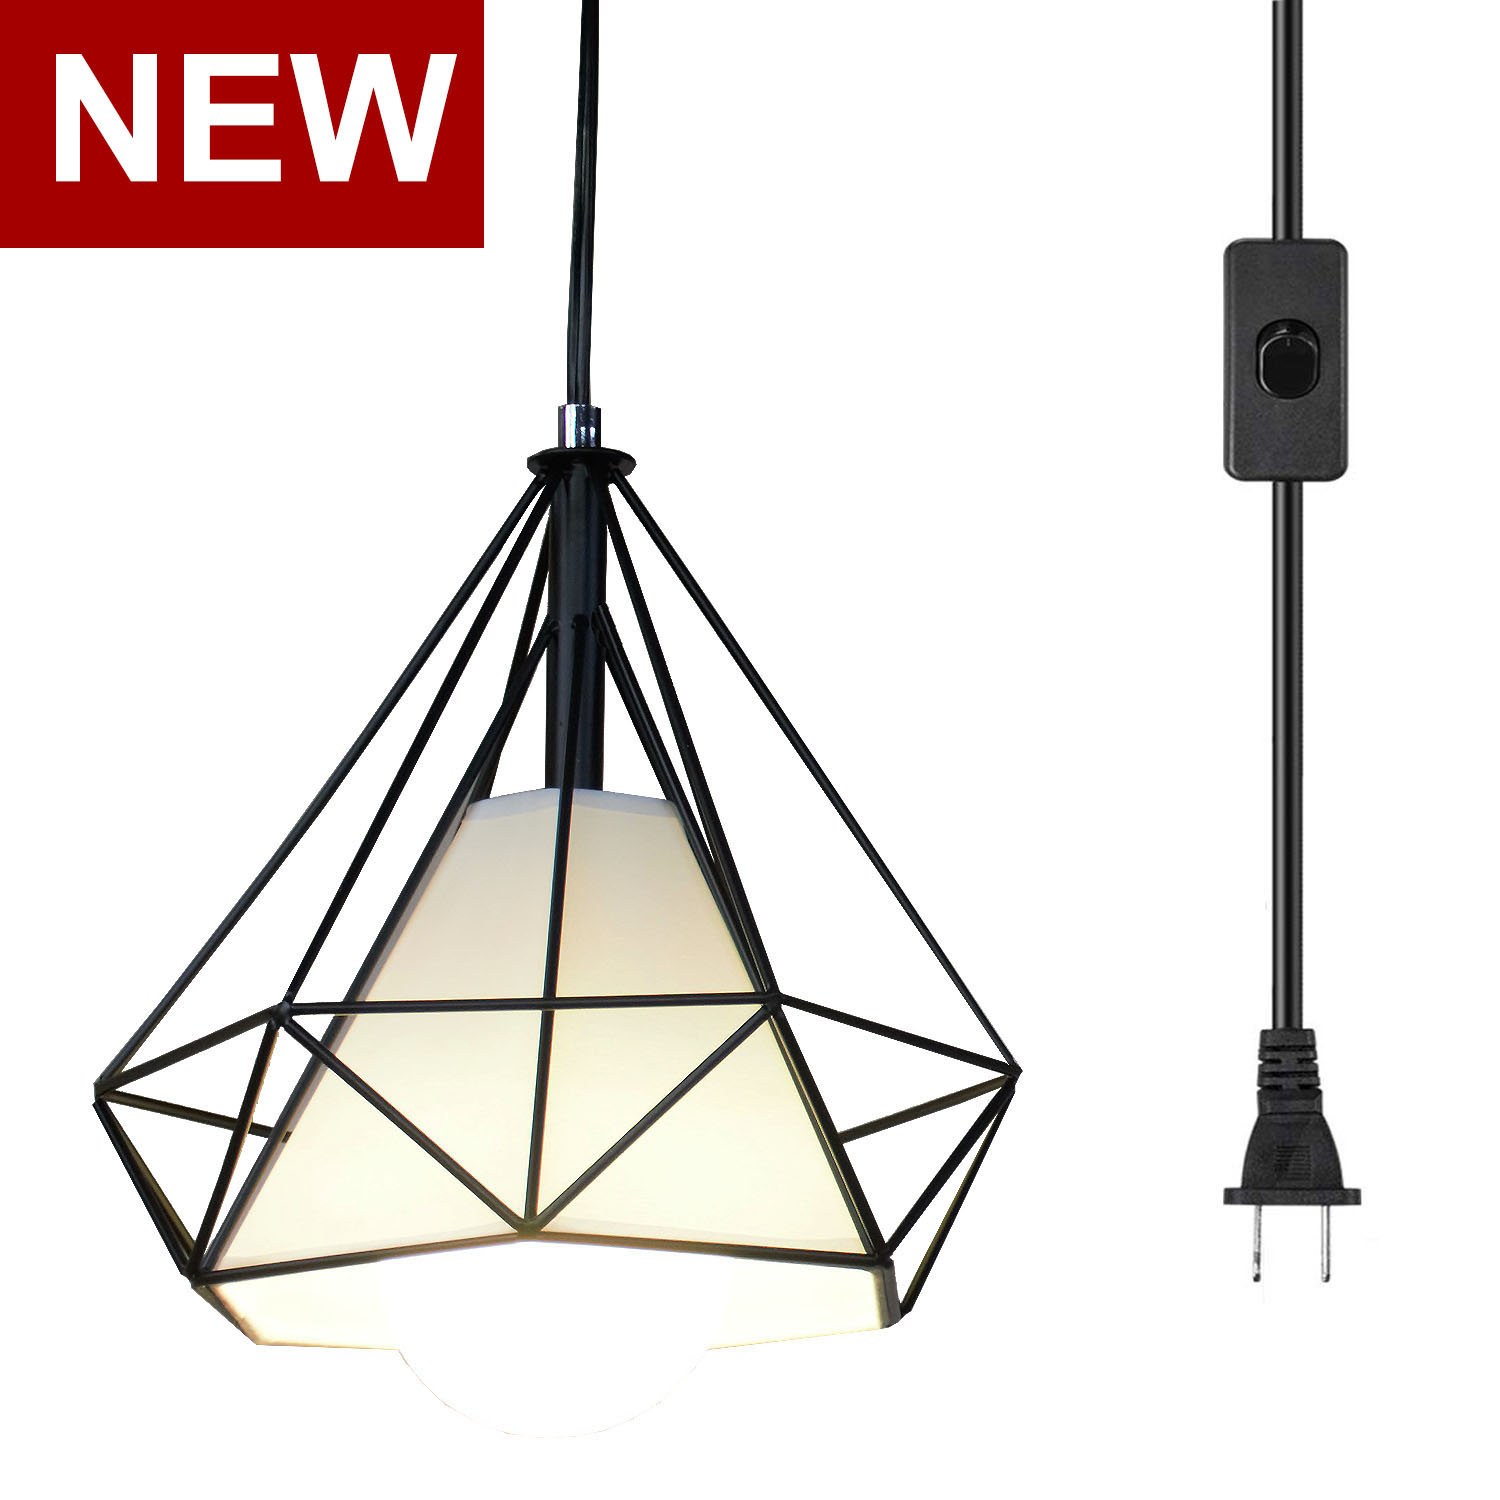 Ganeed Plug In Pendant Light,Industrial Hanging Pendant Lights With Metal Cage Shape,Vintage Hanging Light Fixture With 16.4ft C